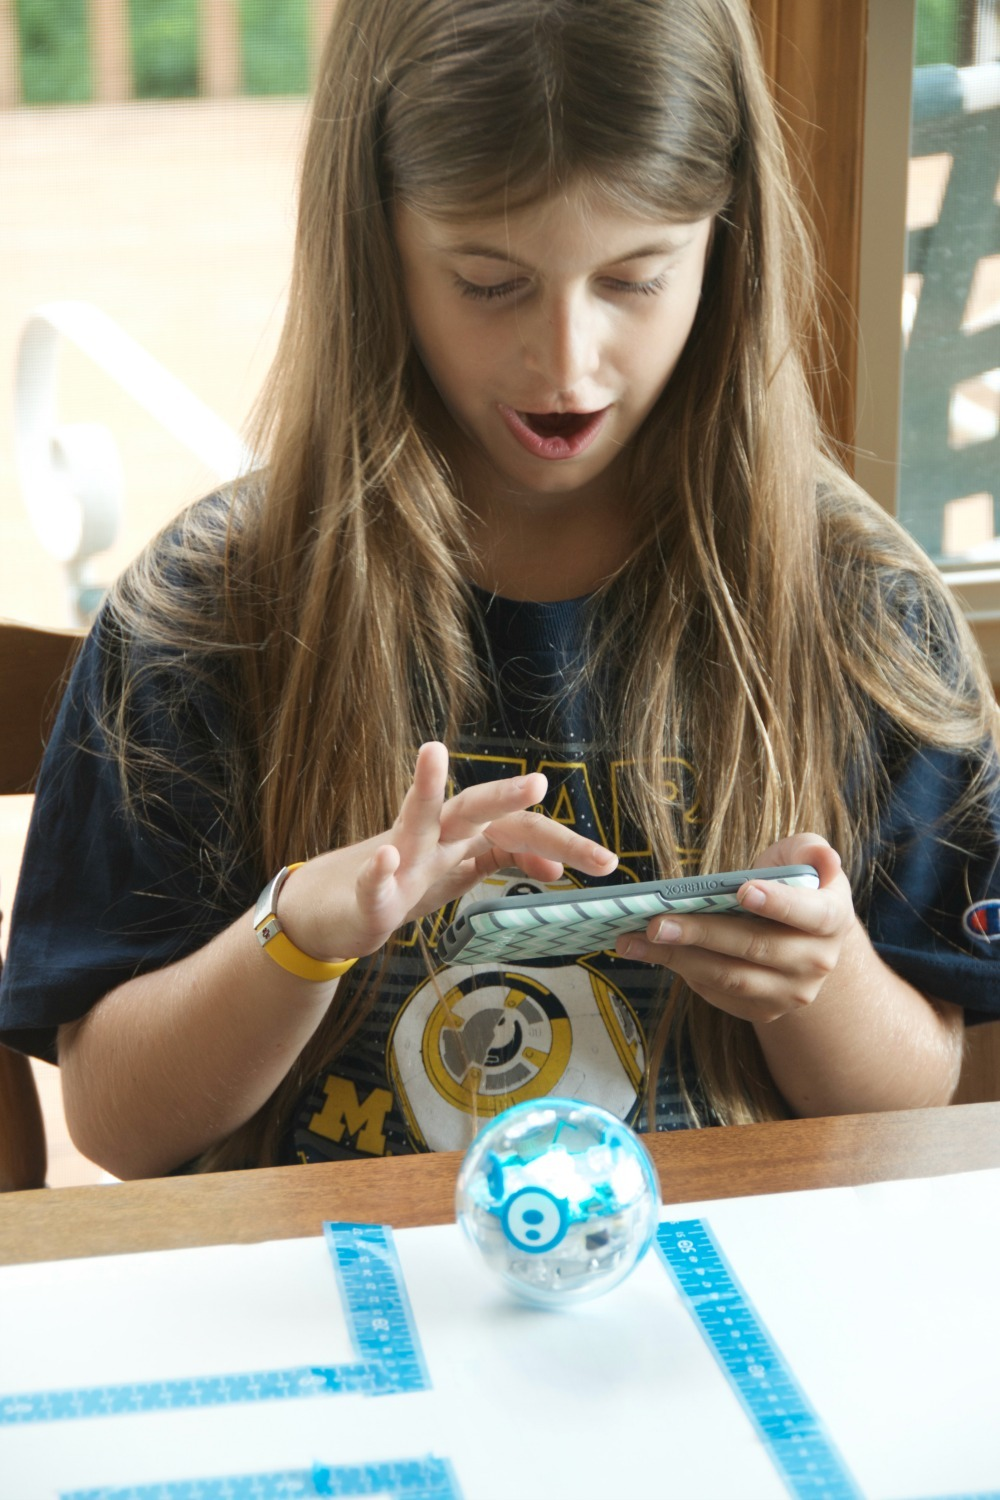 Inspiring the future of STEAM Education with the SPRK+ Robot and Sphere Edu app. A great STEAM App and Toy for kids of all ages and all levels.